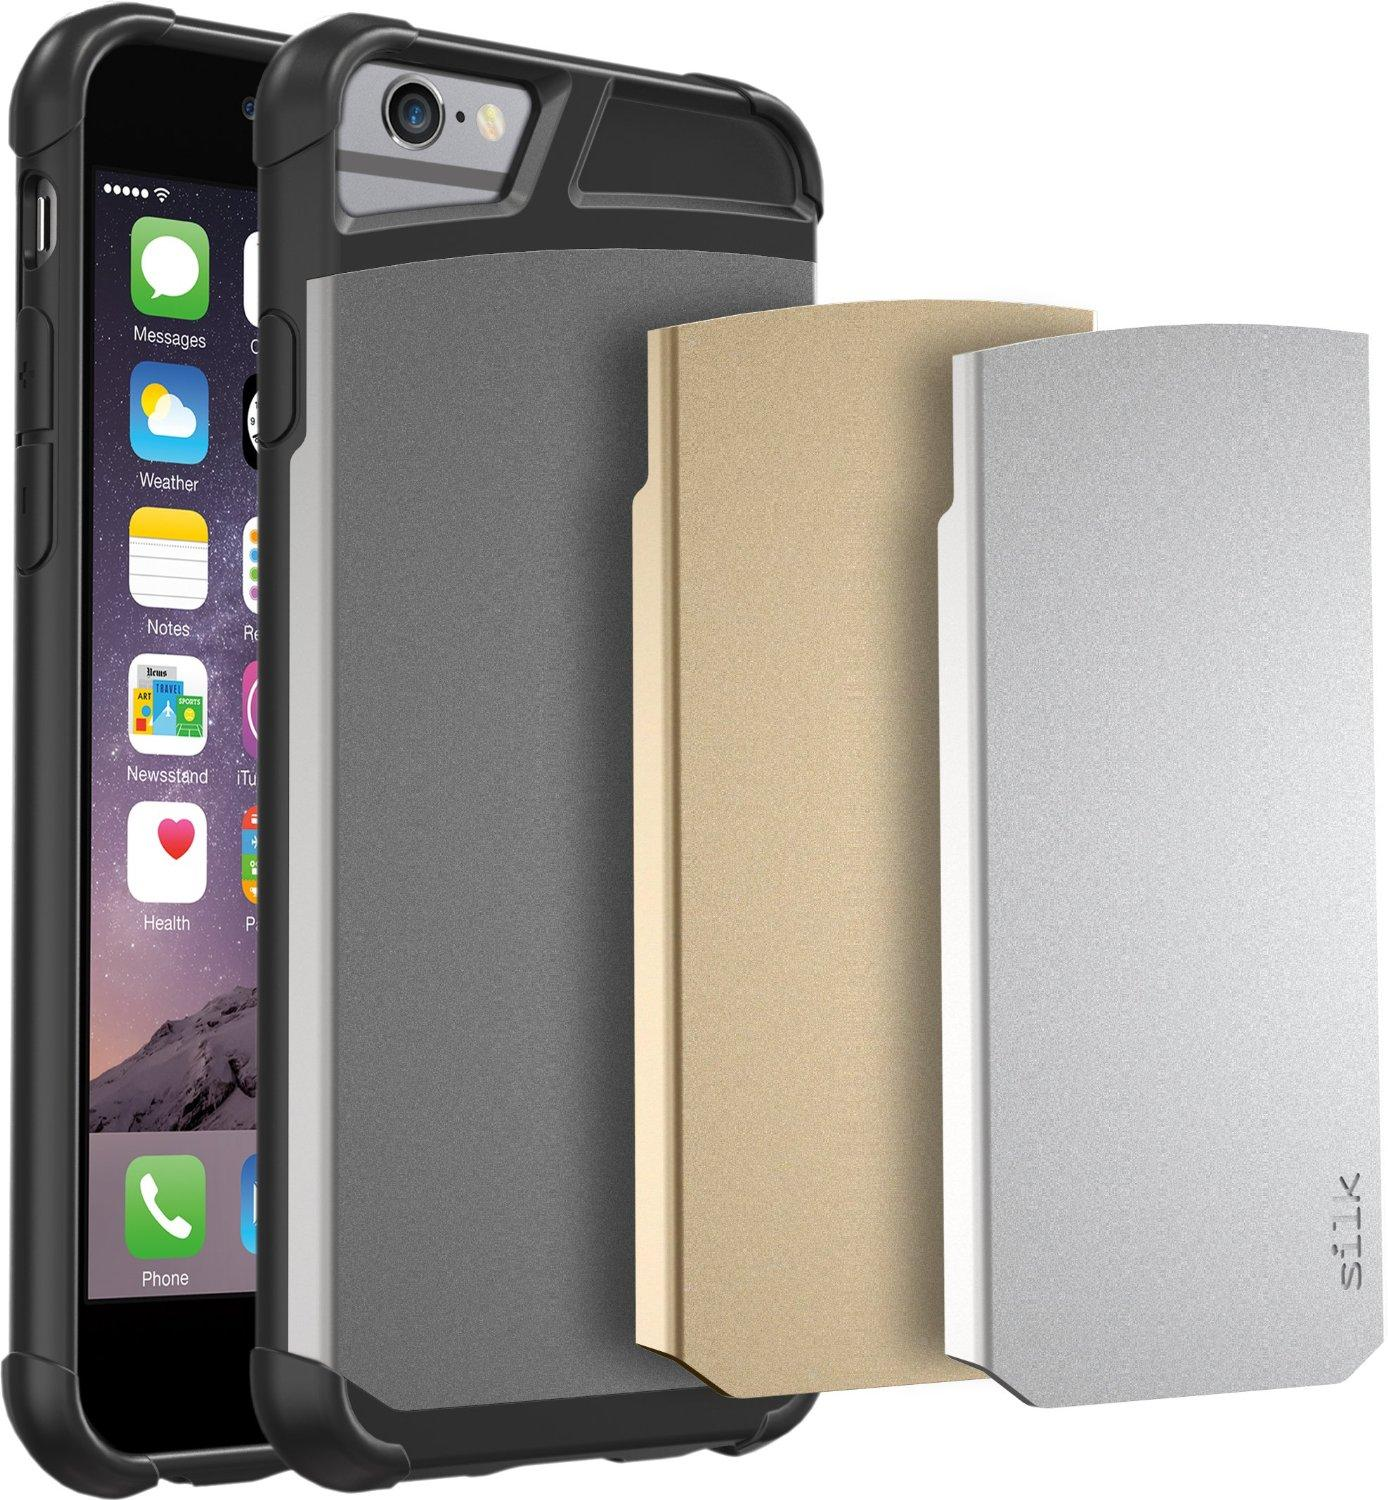 $1.68 Silk Armor Tough Case for iPhone 6/6s